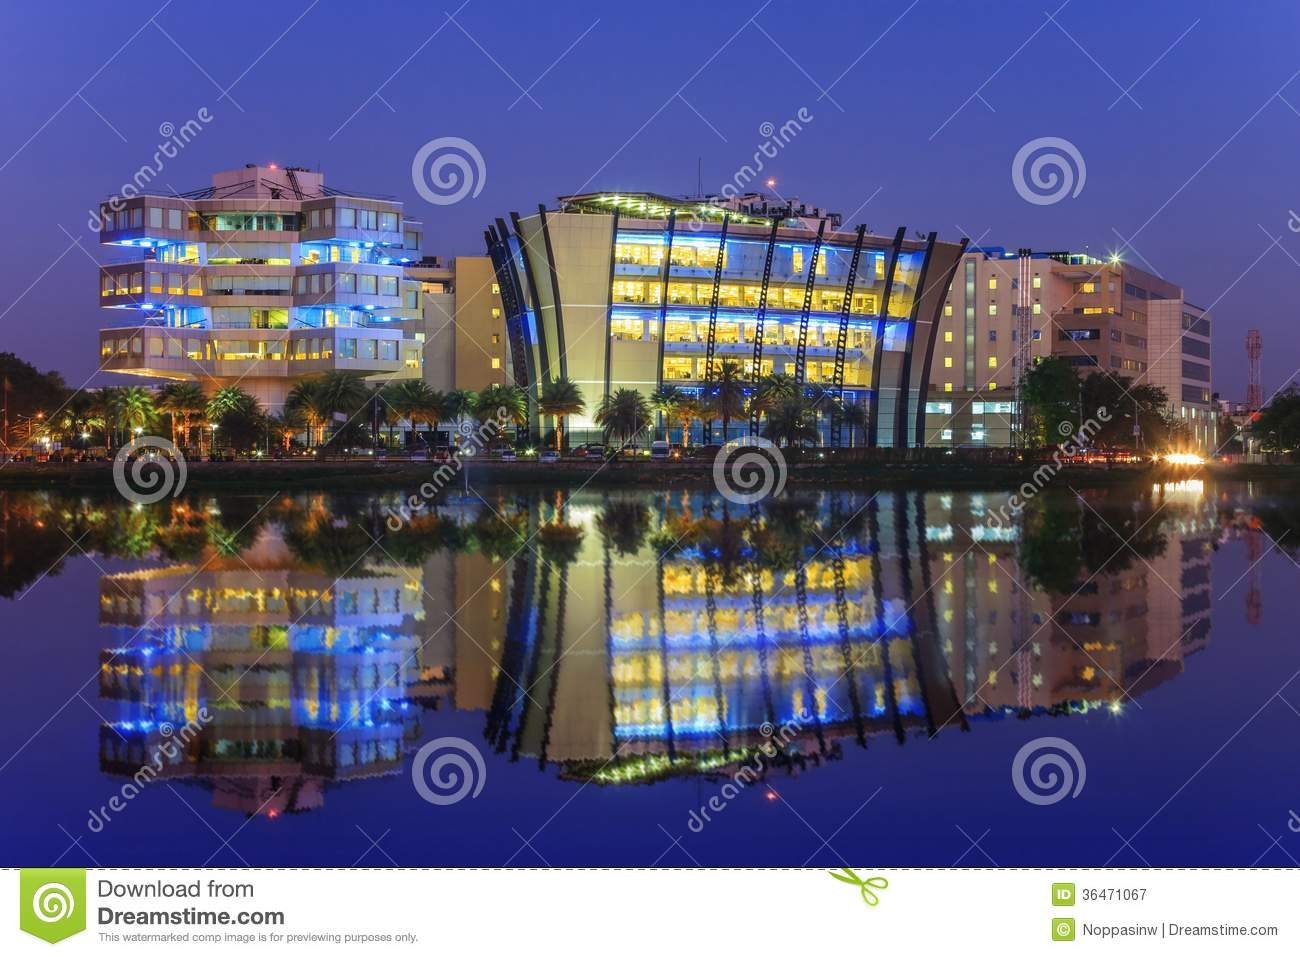 Architecture Photography Bangalore bangalore, india royalty free stock photography - image: 36471067